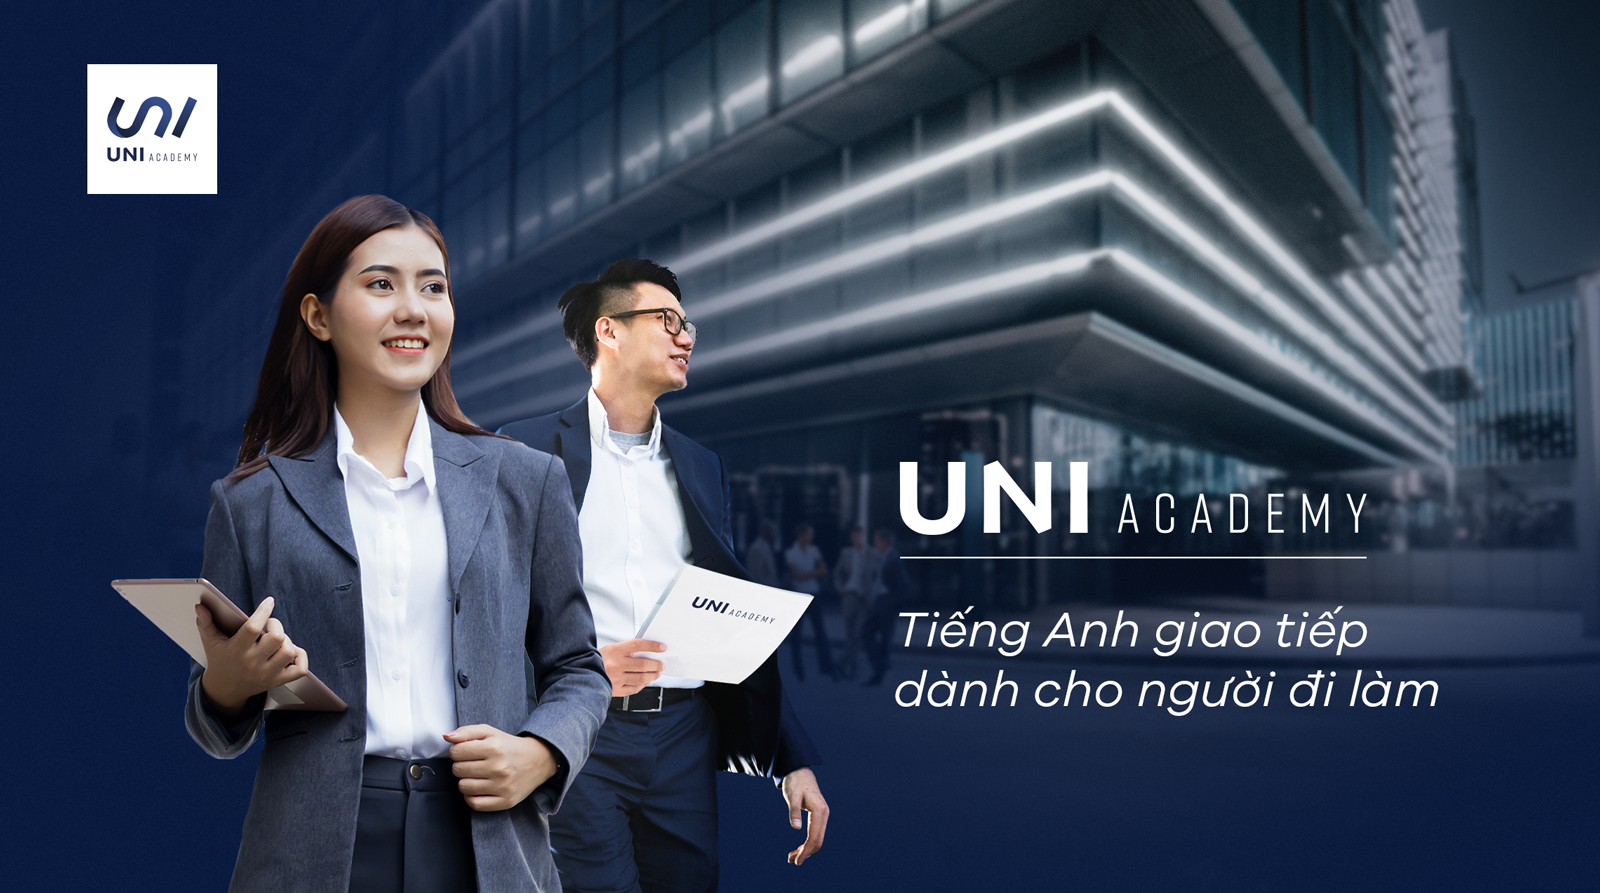 UNI Academy - Tiếng Anh doanh nghiệp